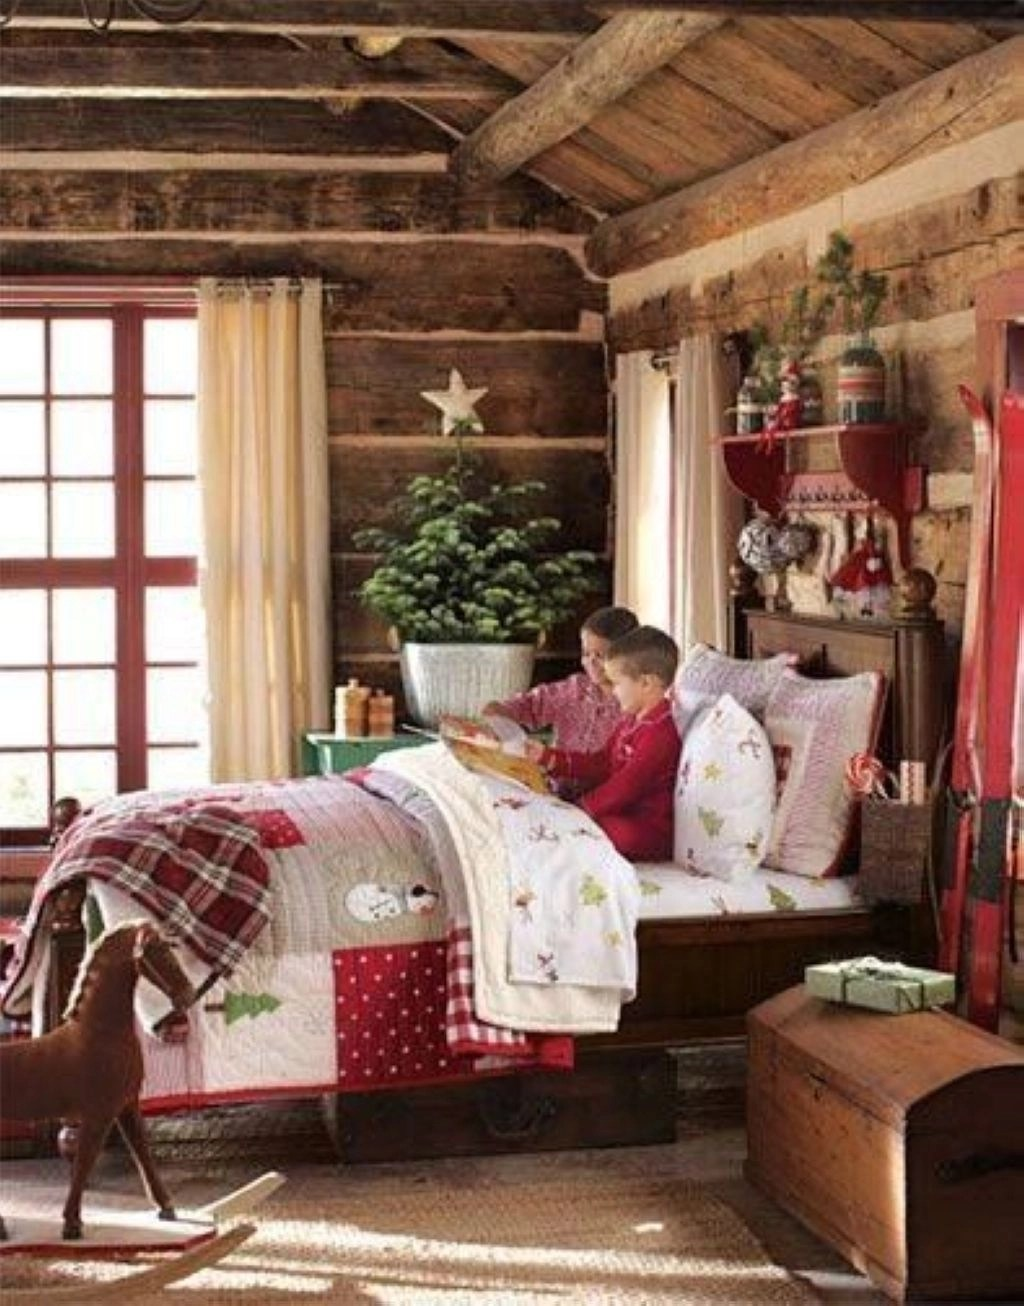 Reading christmas stories and waiting for santa in bedroom